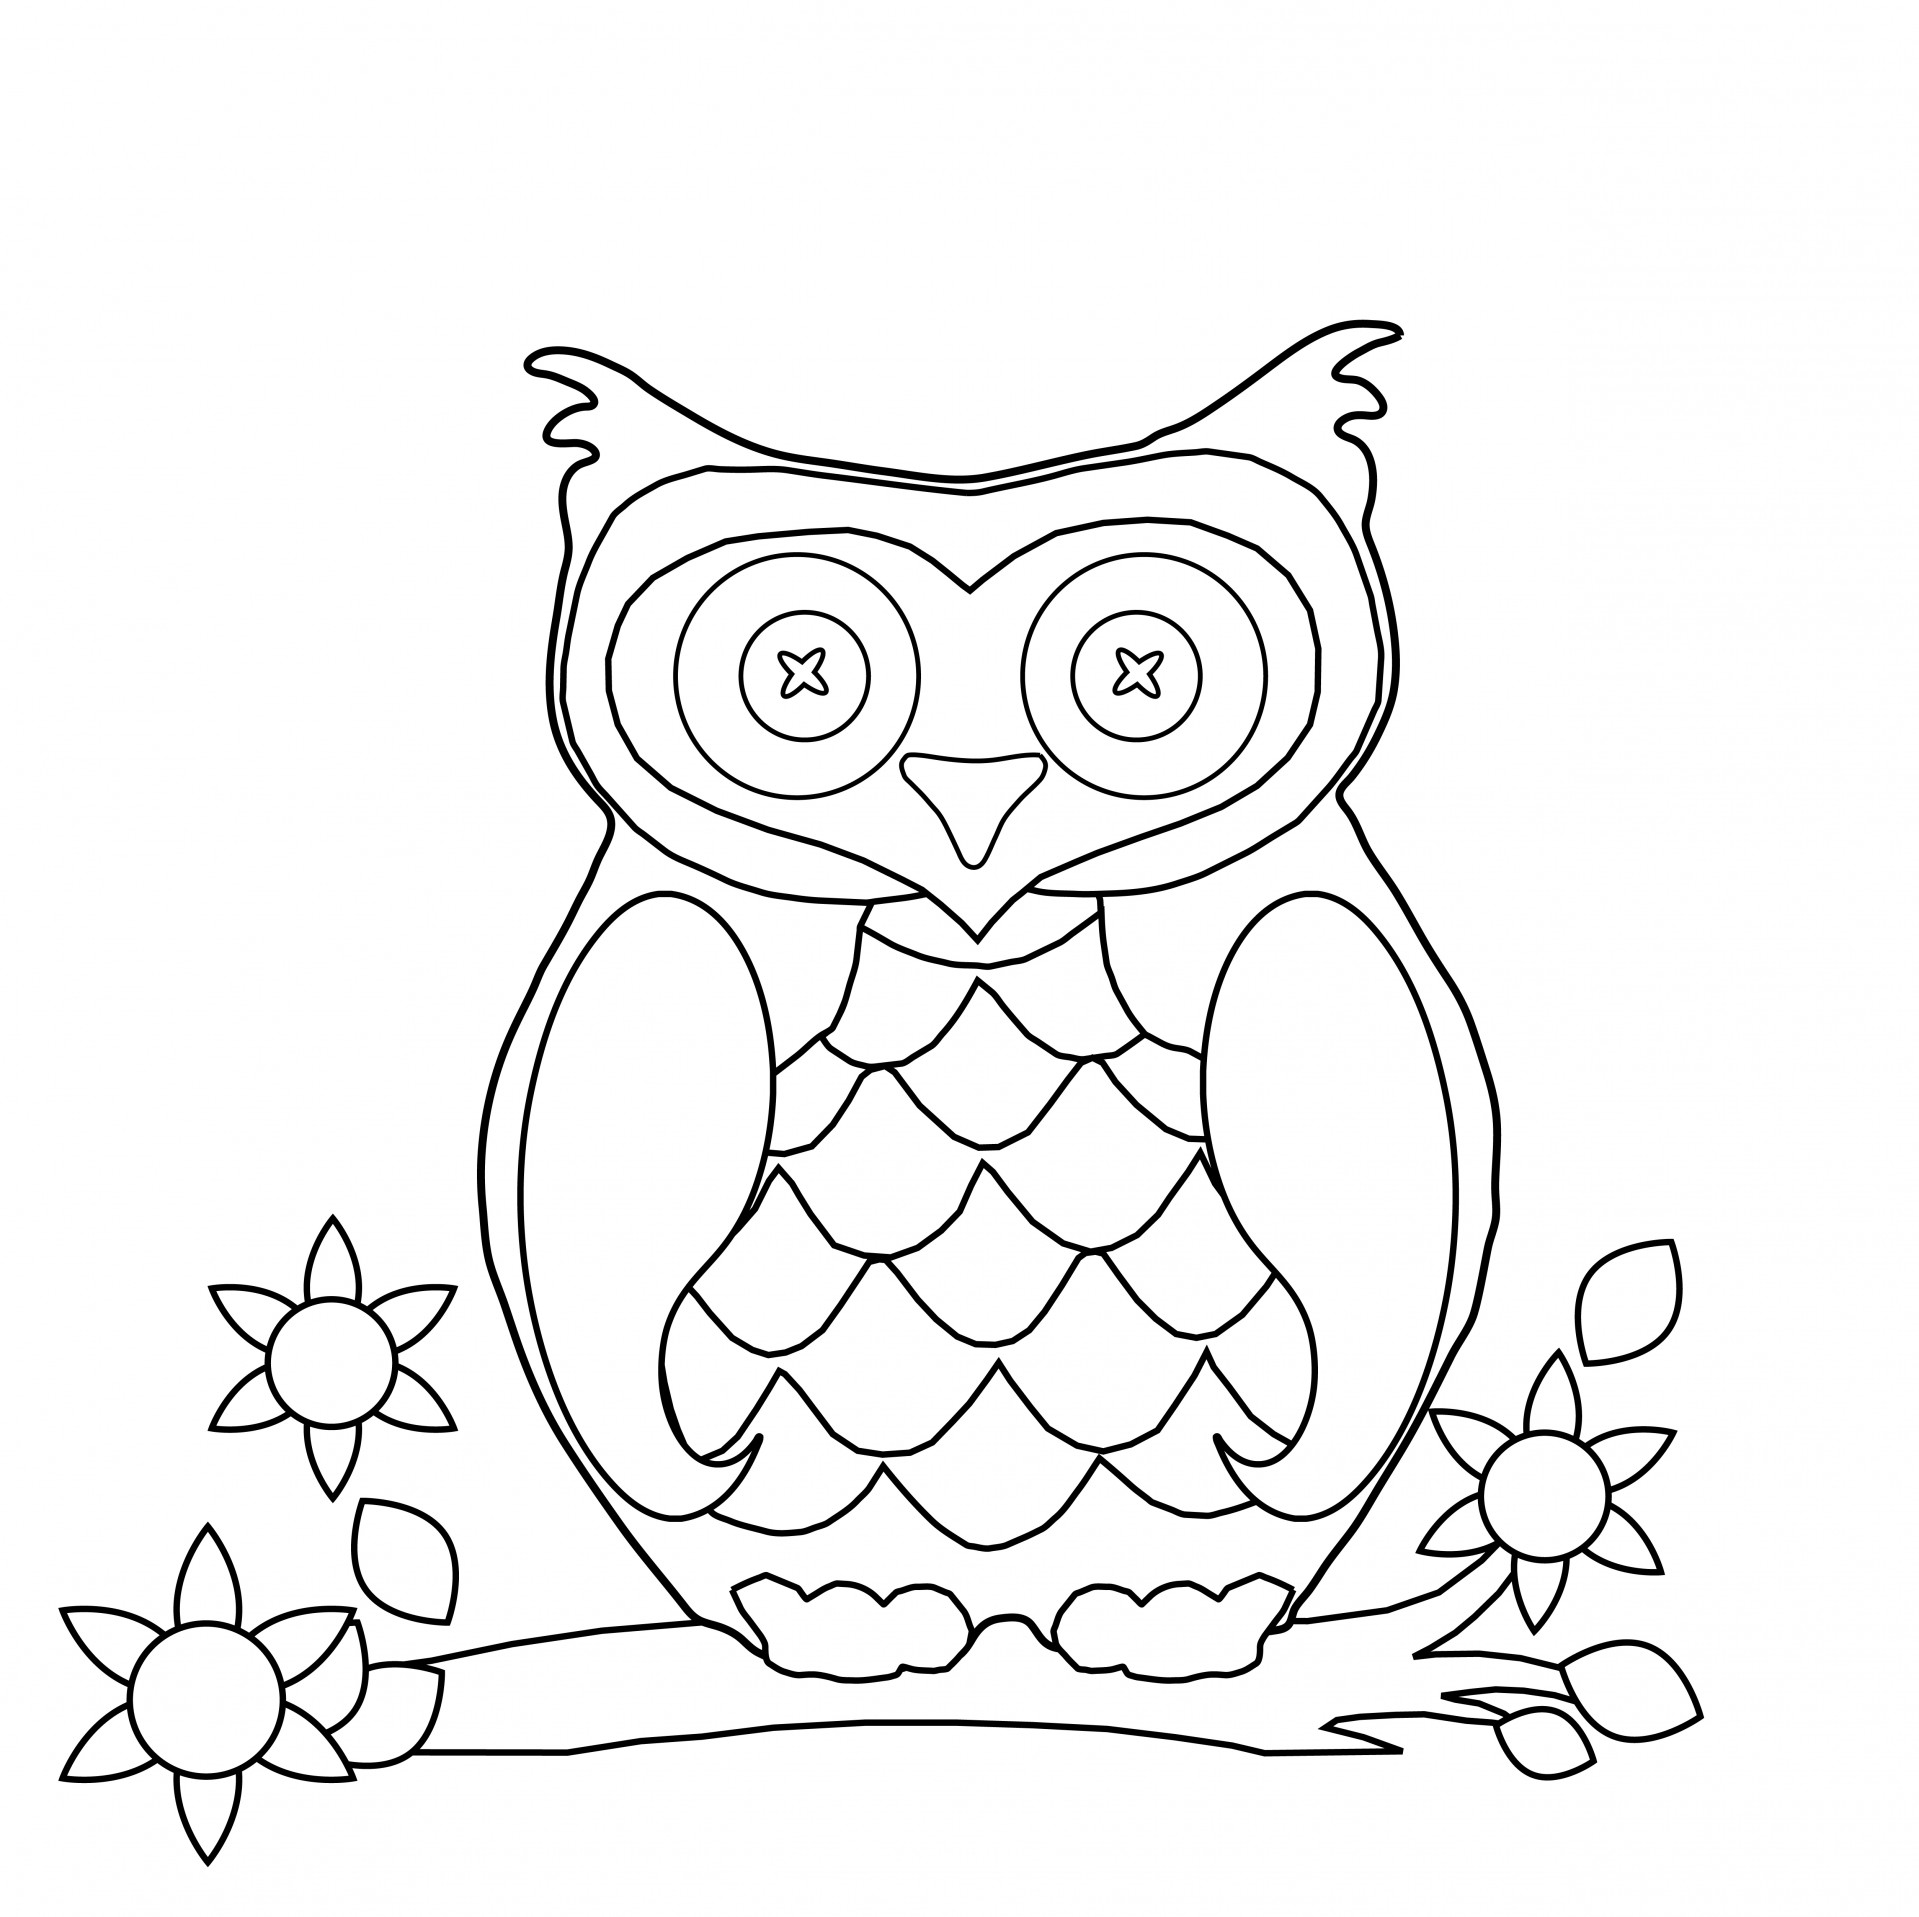 Make any picture a coloring page with ipiccy ipiccy for Beatrice doesn t want to coloring page